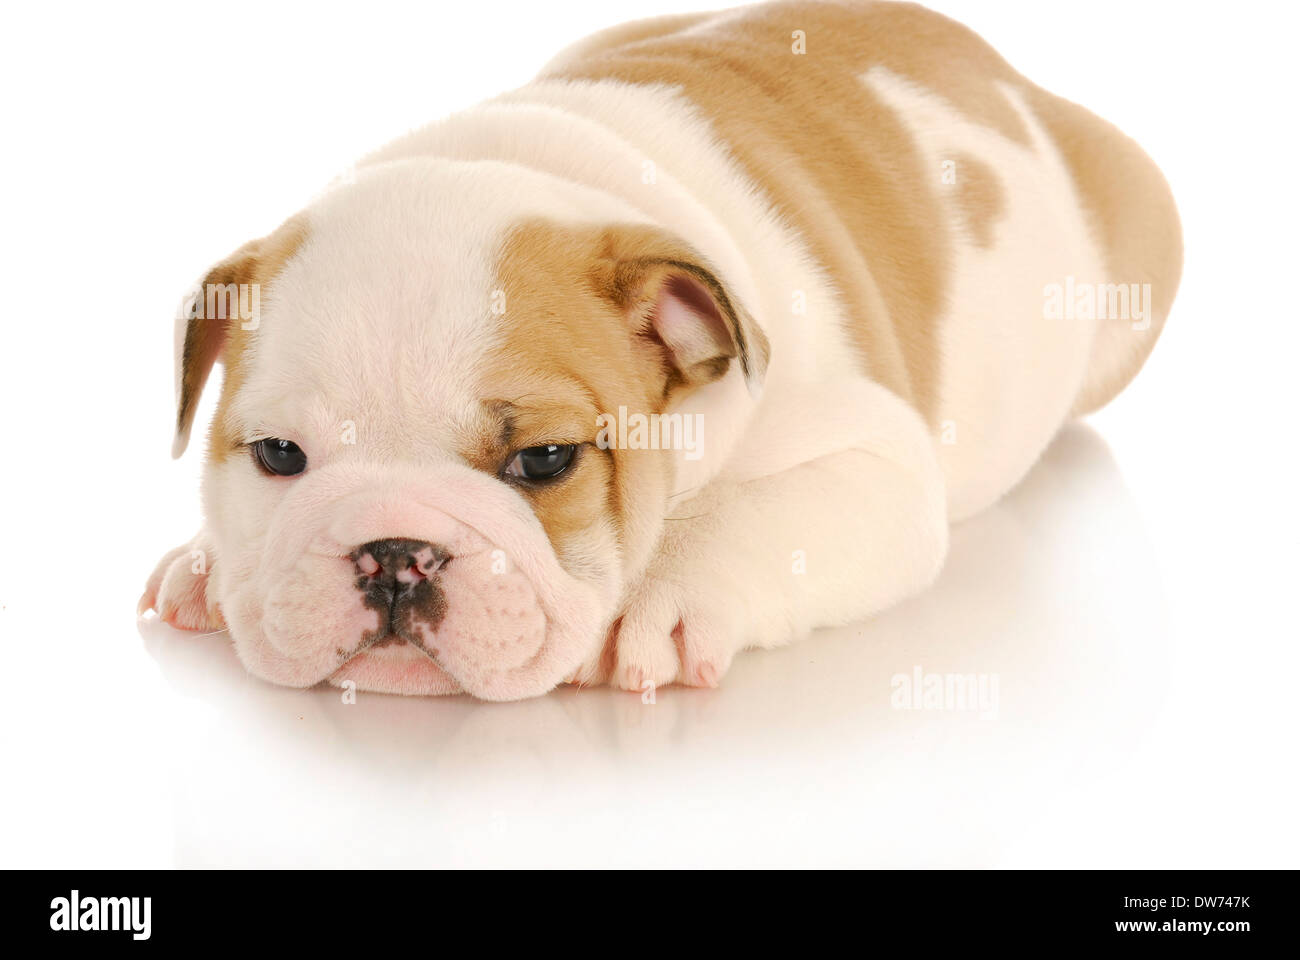 Puppy Growth English Bulldog Puppy High Resolution Stock Photography And Images Alamy